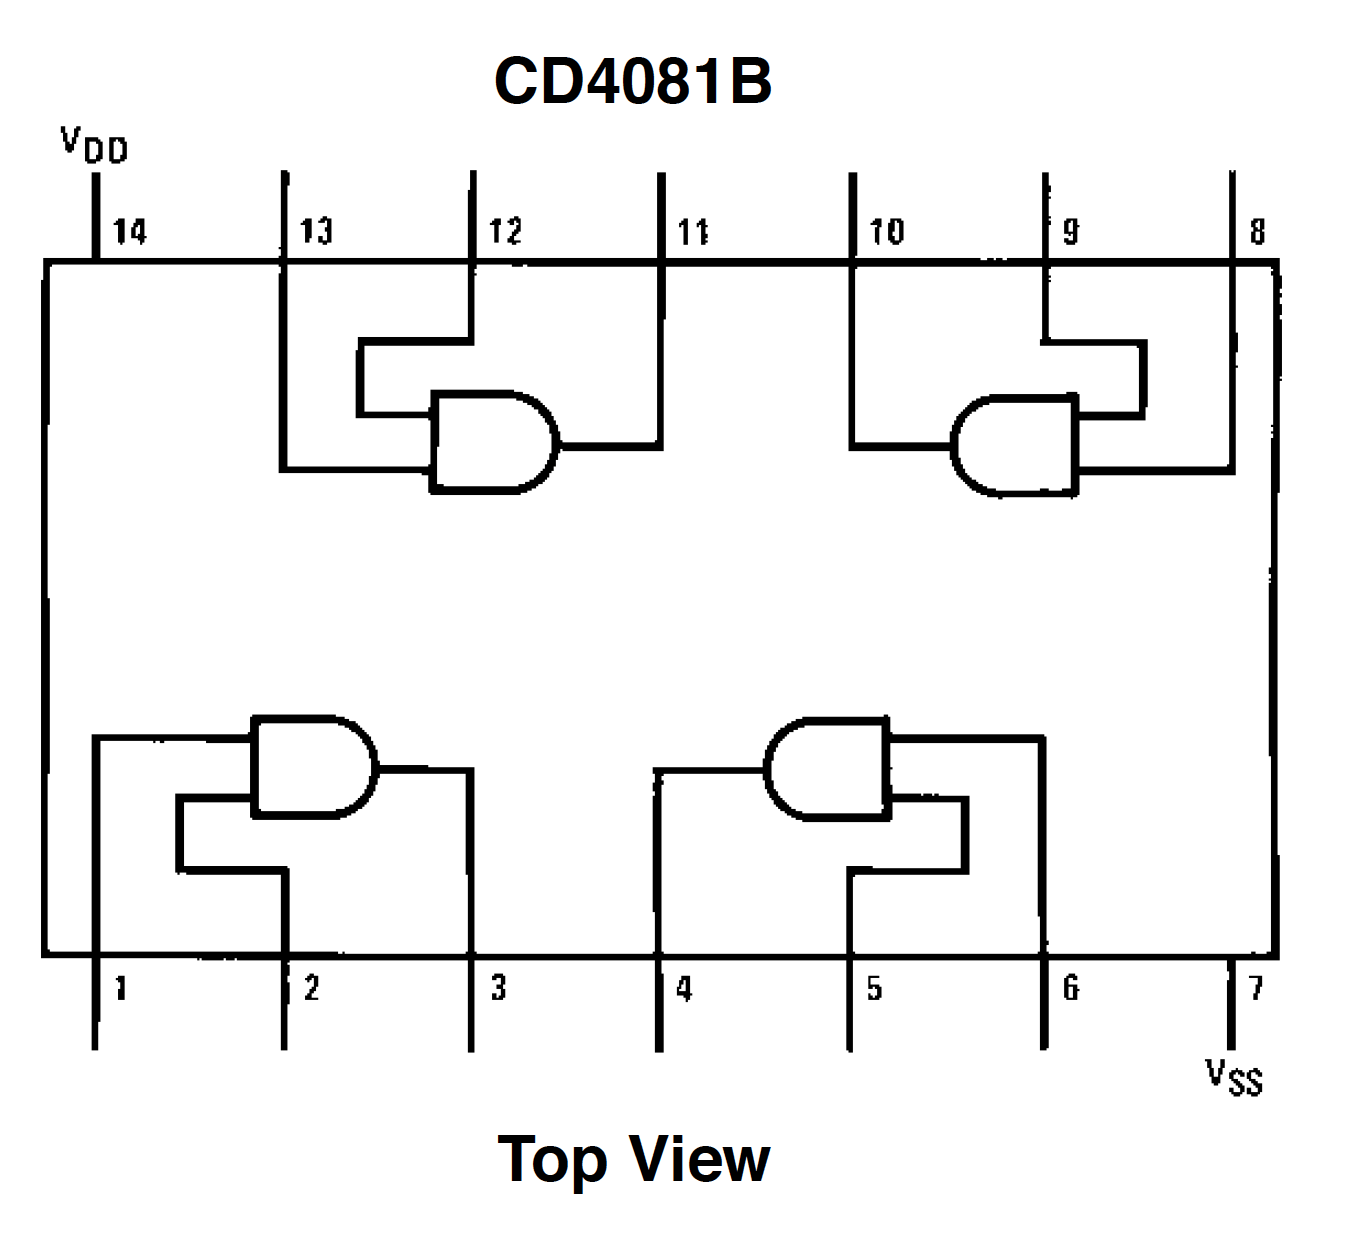 Need Help Converting My Circuit Schematic To A Br